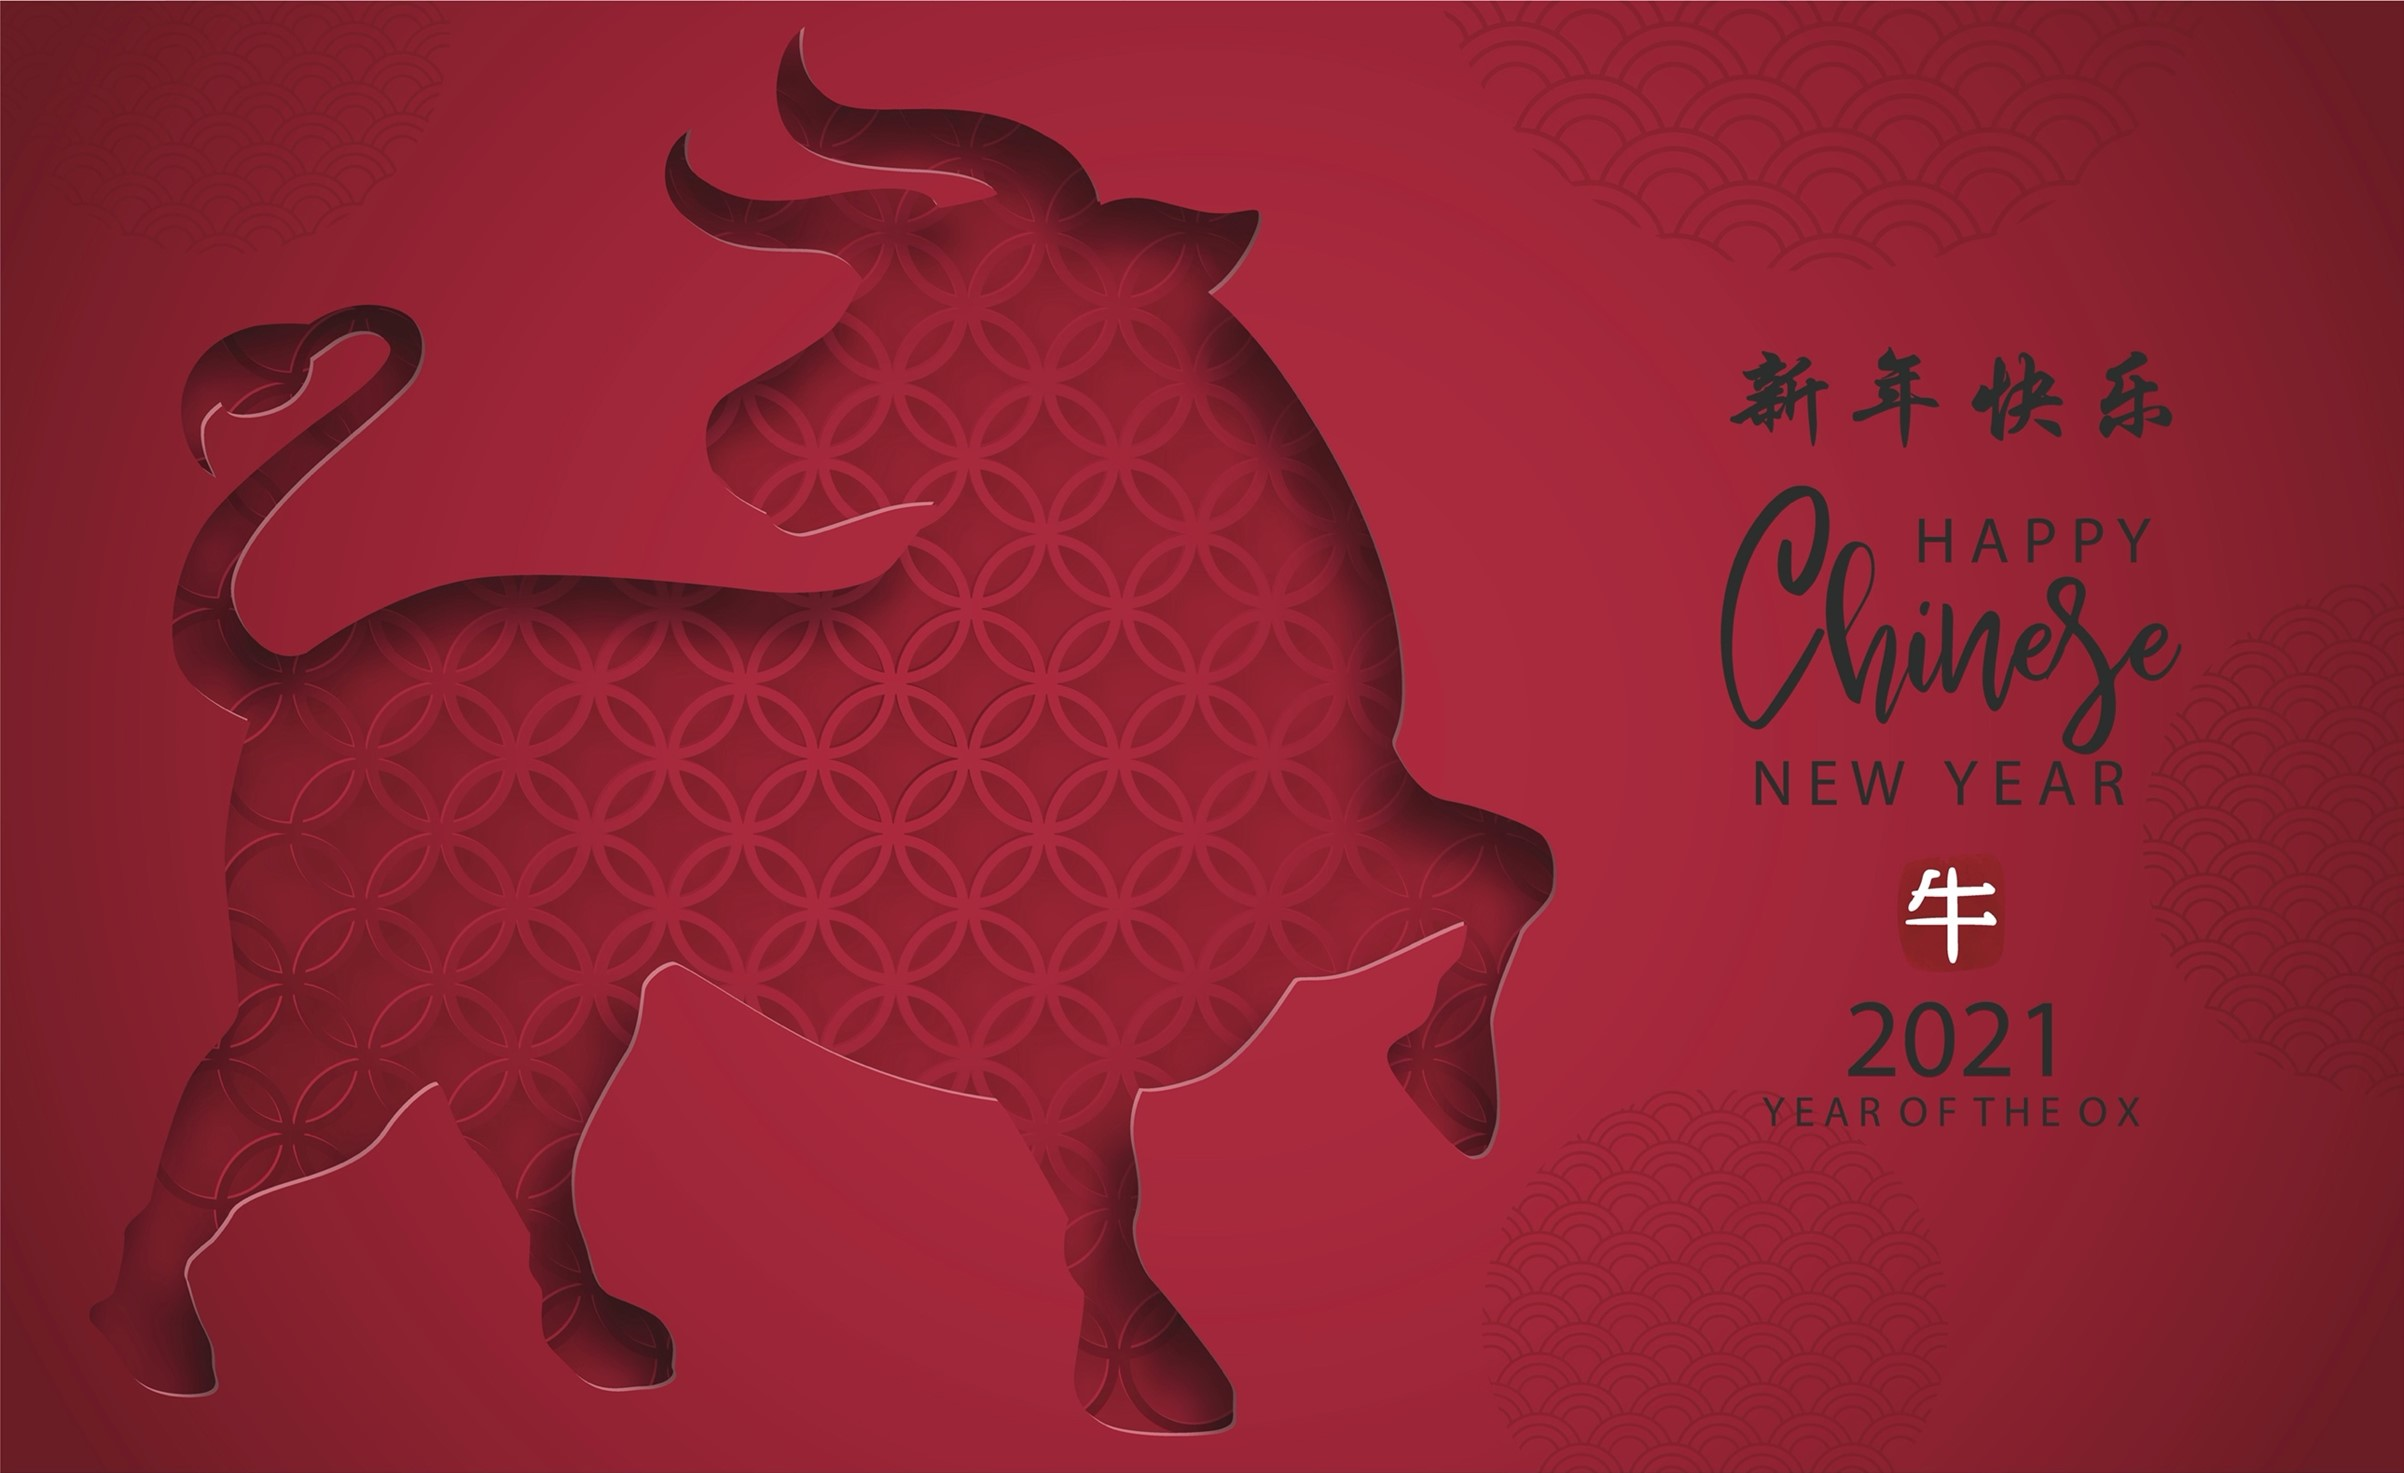 Personalised T-Shirt Printing Design Ideas for Lunar New Year